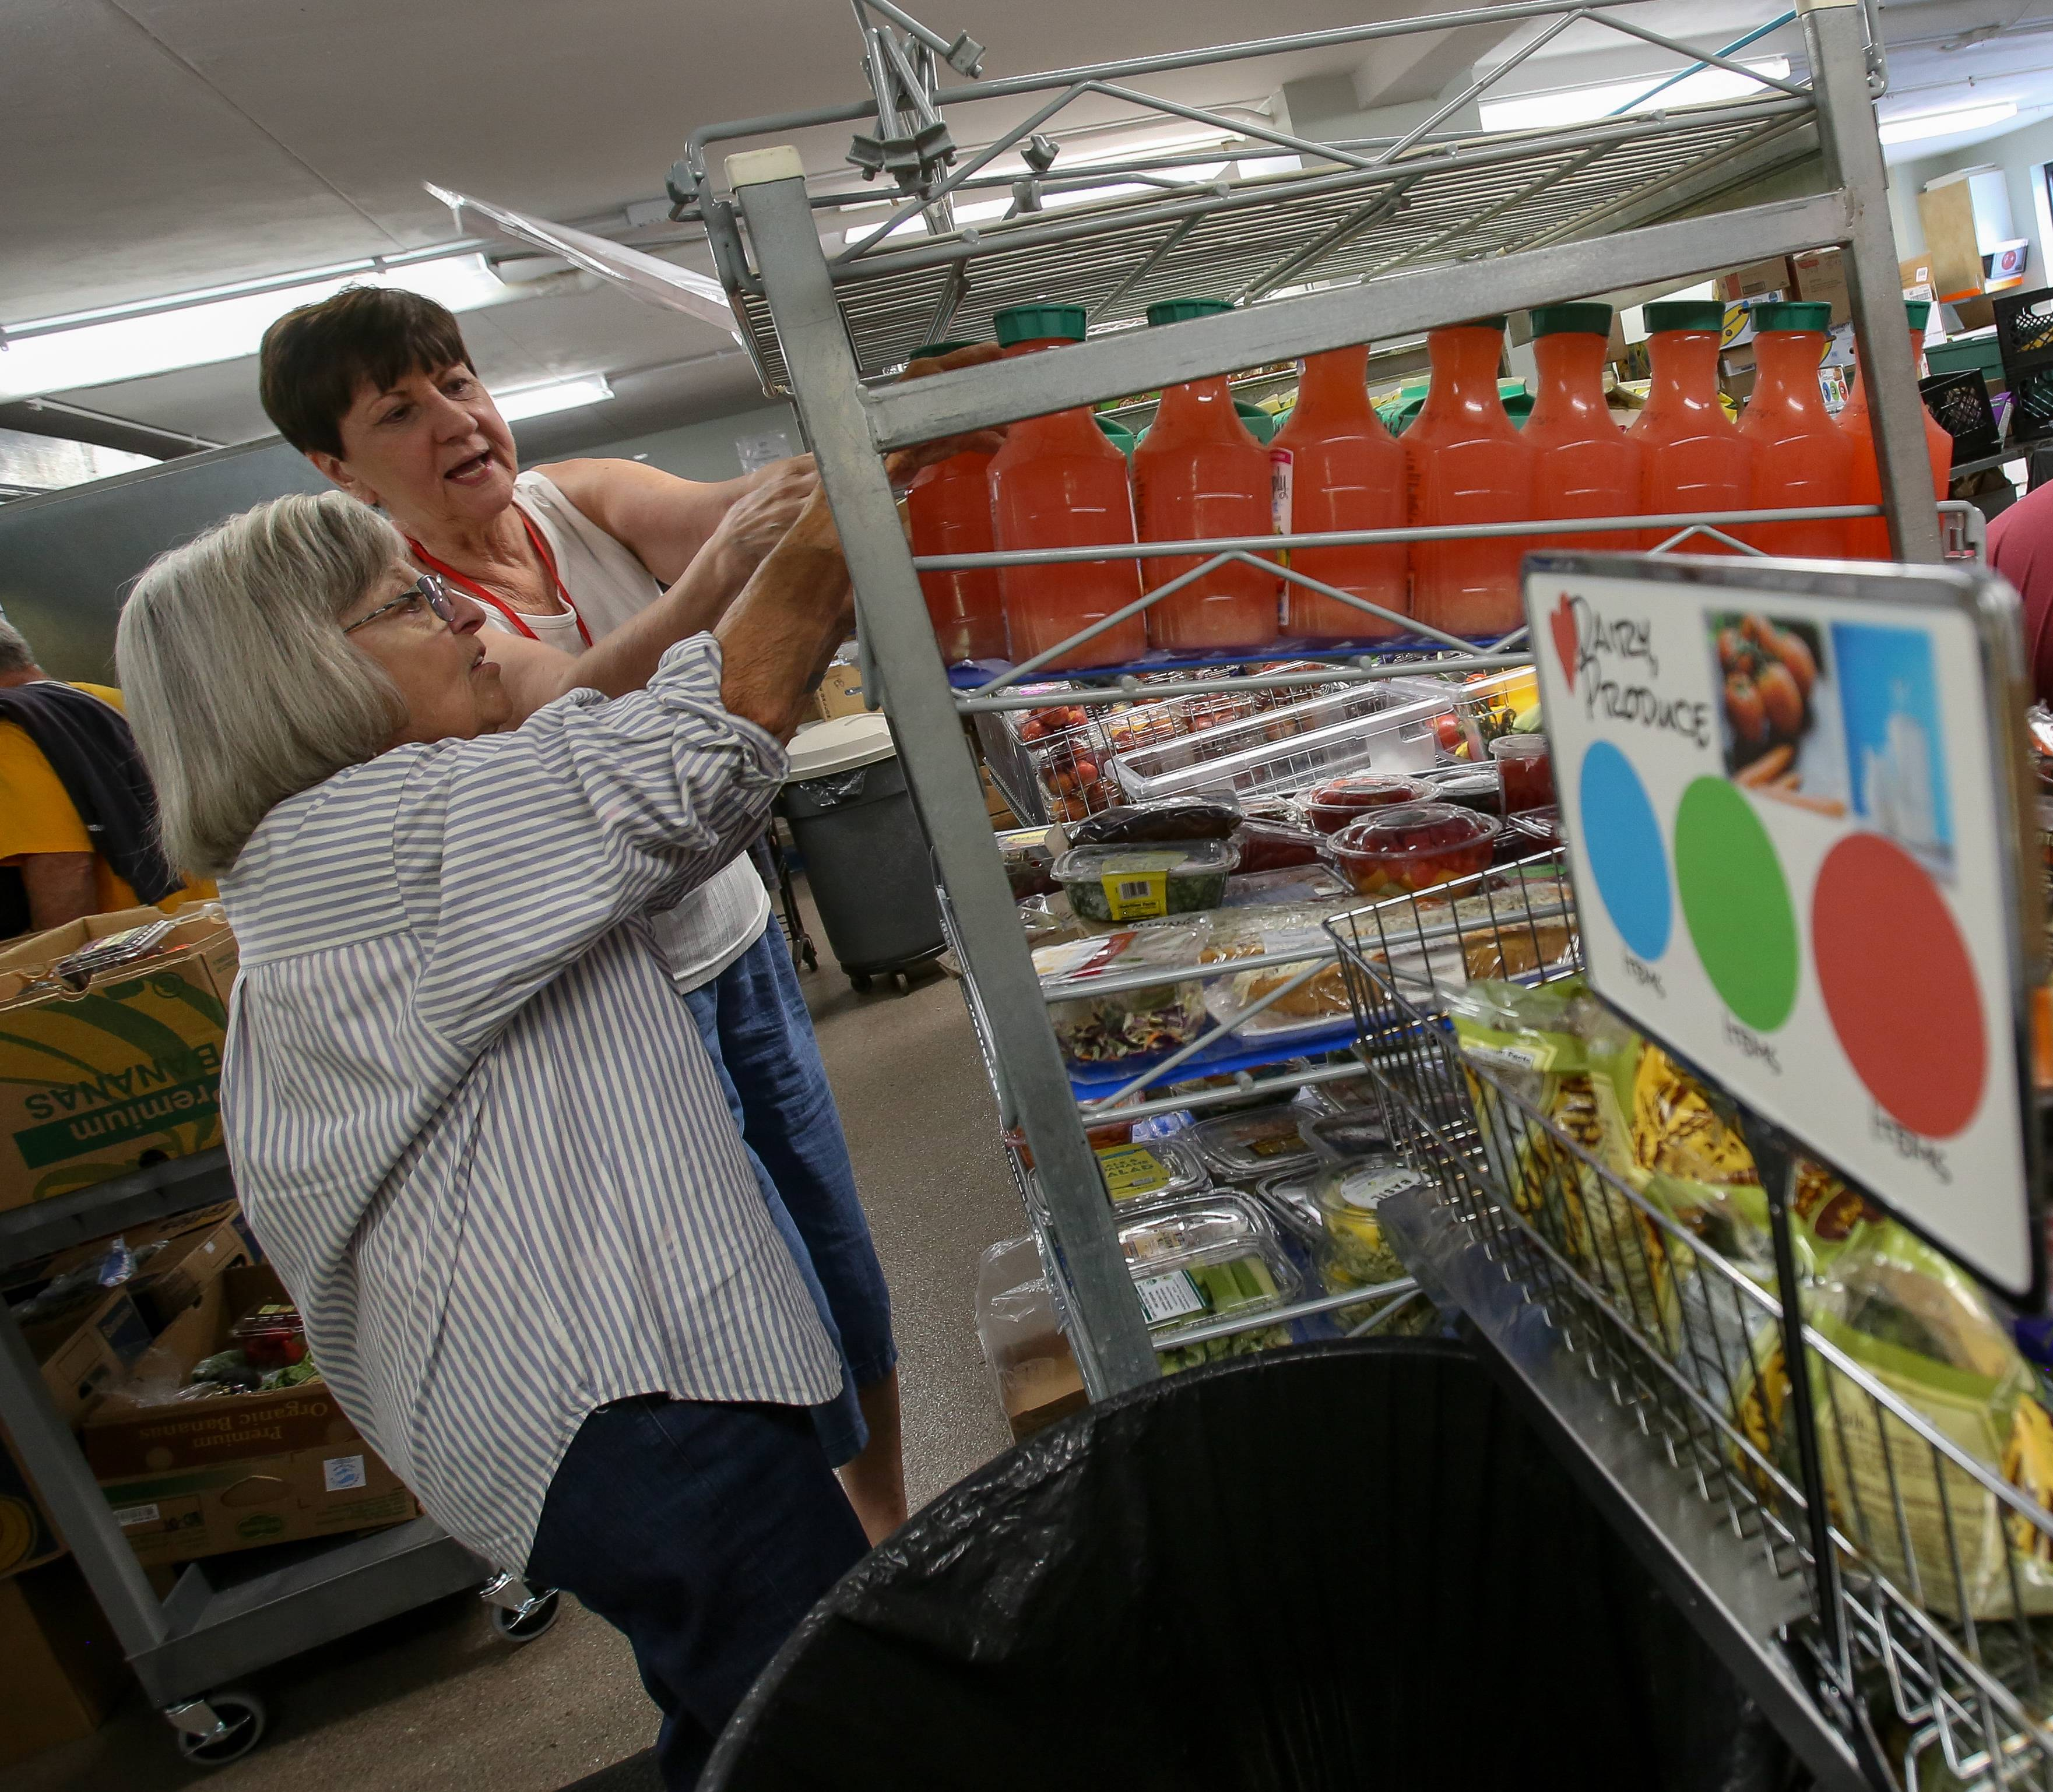 Volunteers Diane Lynch of Wheaton and Ruth Zumpano of Carol Stream, right, get groceries ready at the new-look food pantry in the People's Resource Center in Wheaton. The pantry had been closed since July 25.